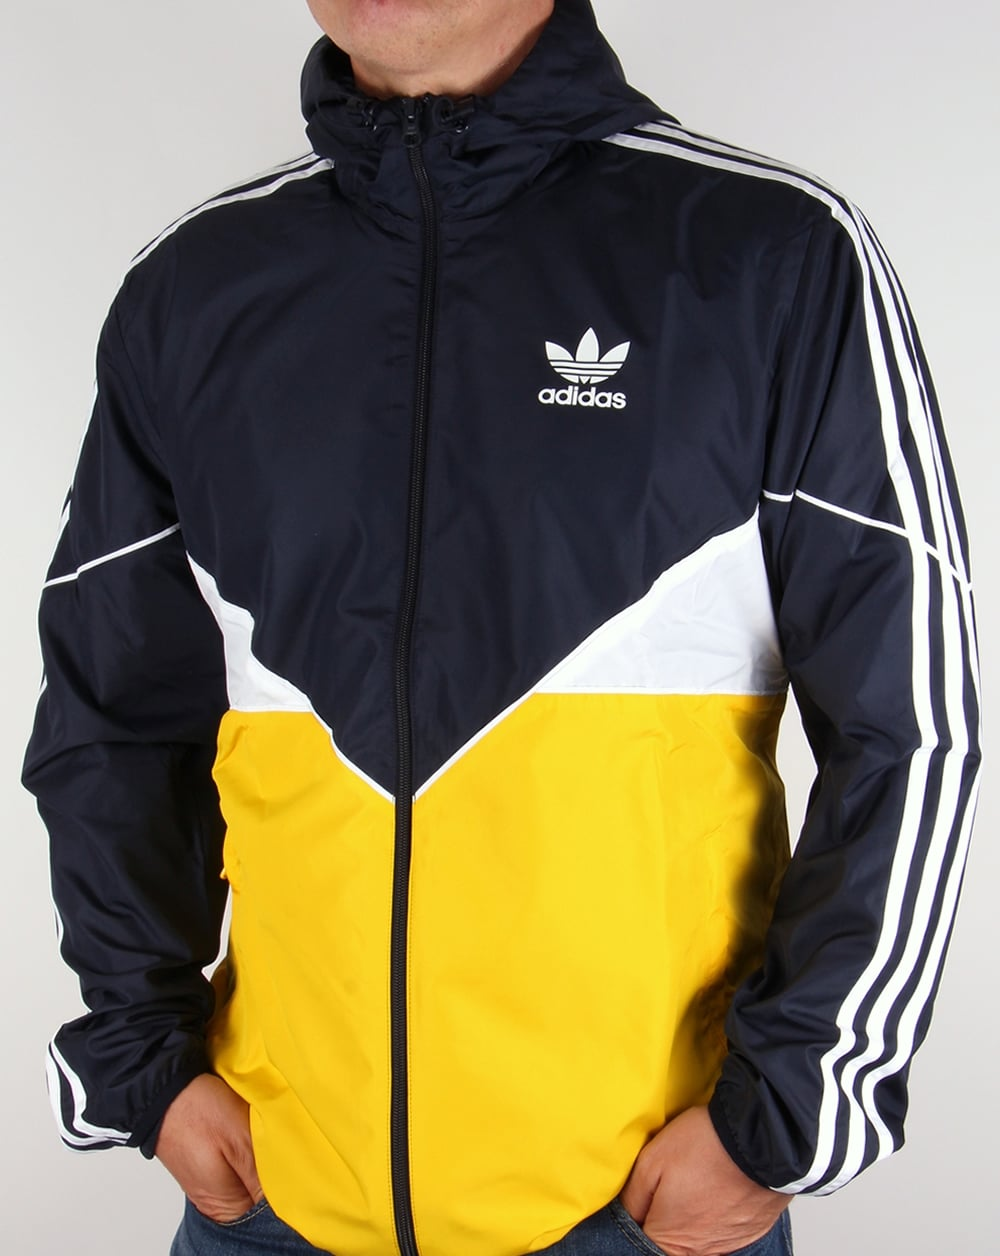 777cf97c1 adidas Originals Adidas Originals Colorado Windbreaker Navy/Yellow